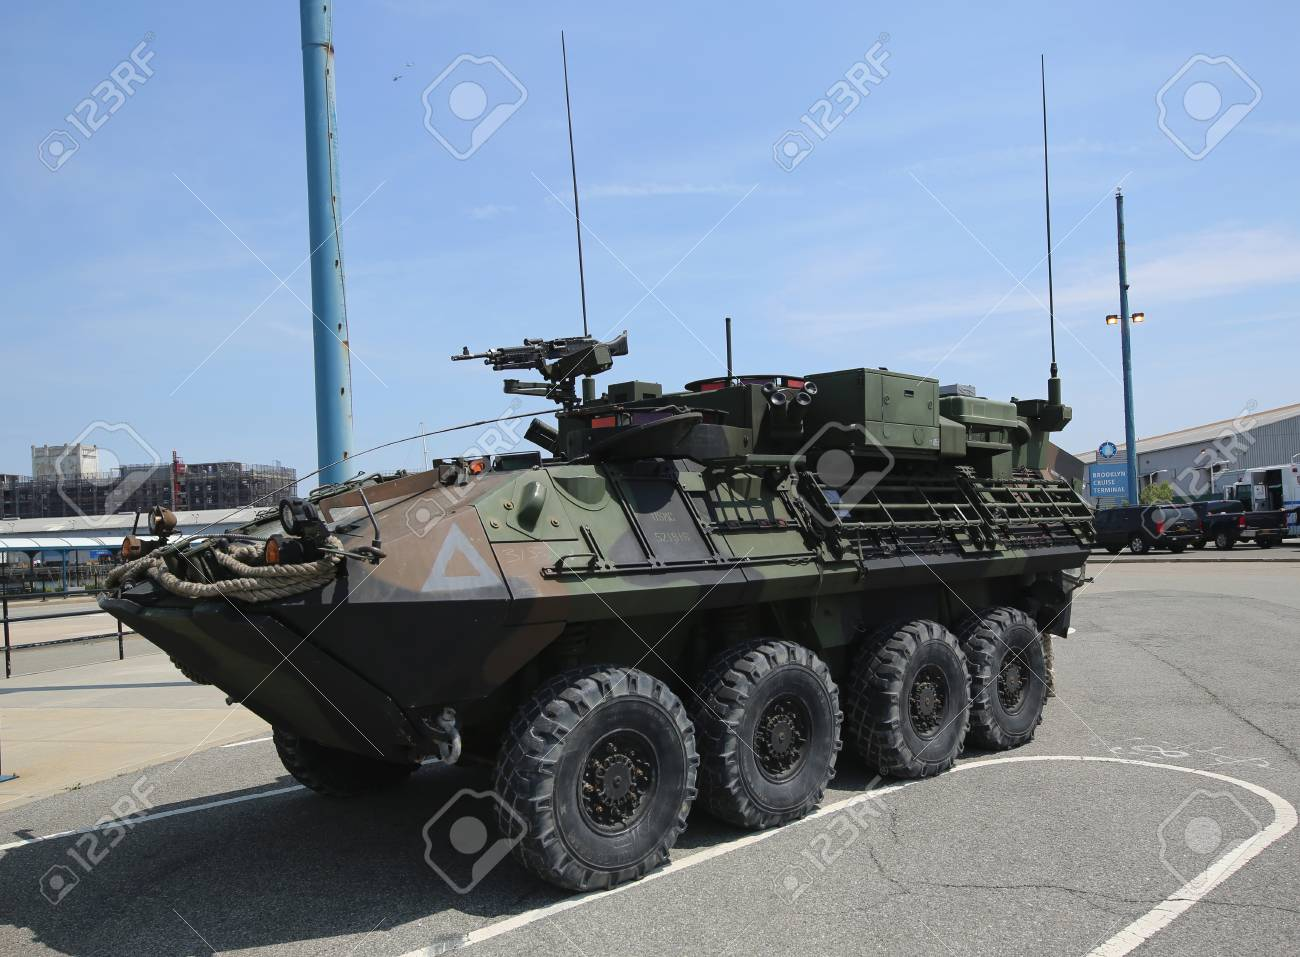 NEW YORK   MAY 26, 2016: Light Armored Vehicle Command And Control (